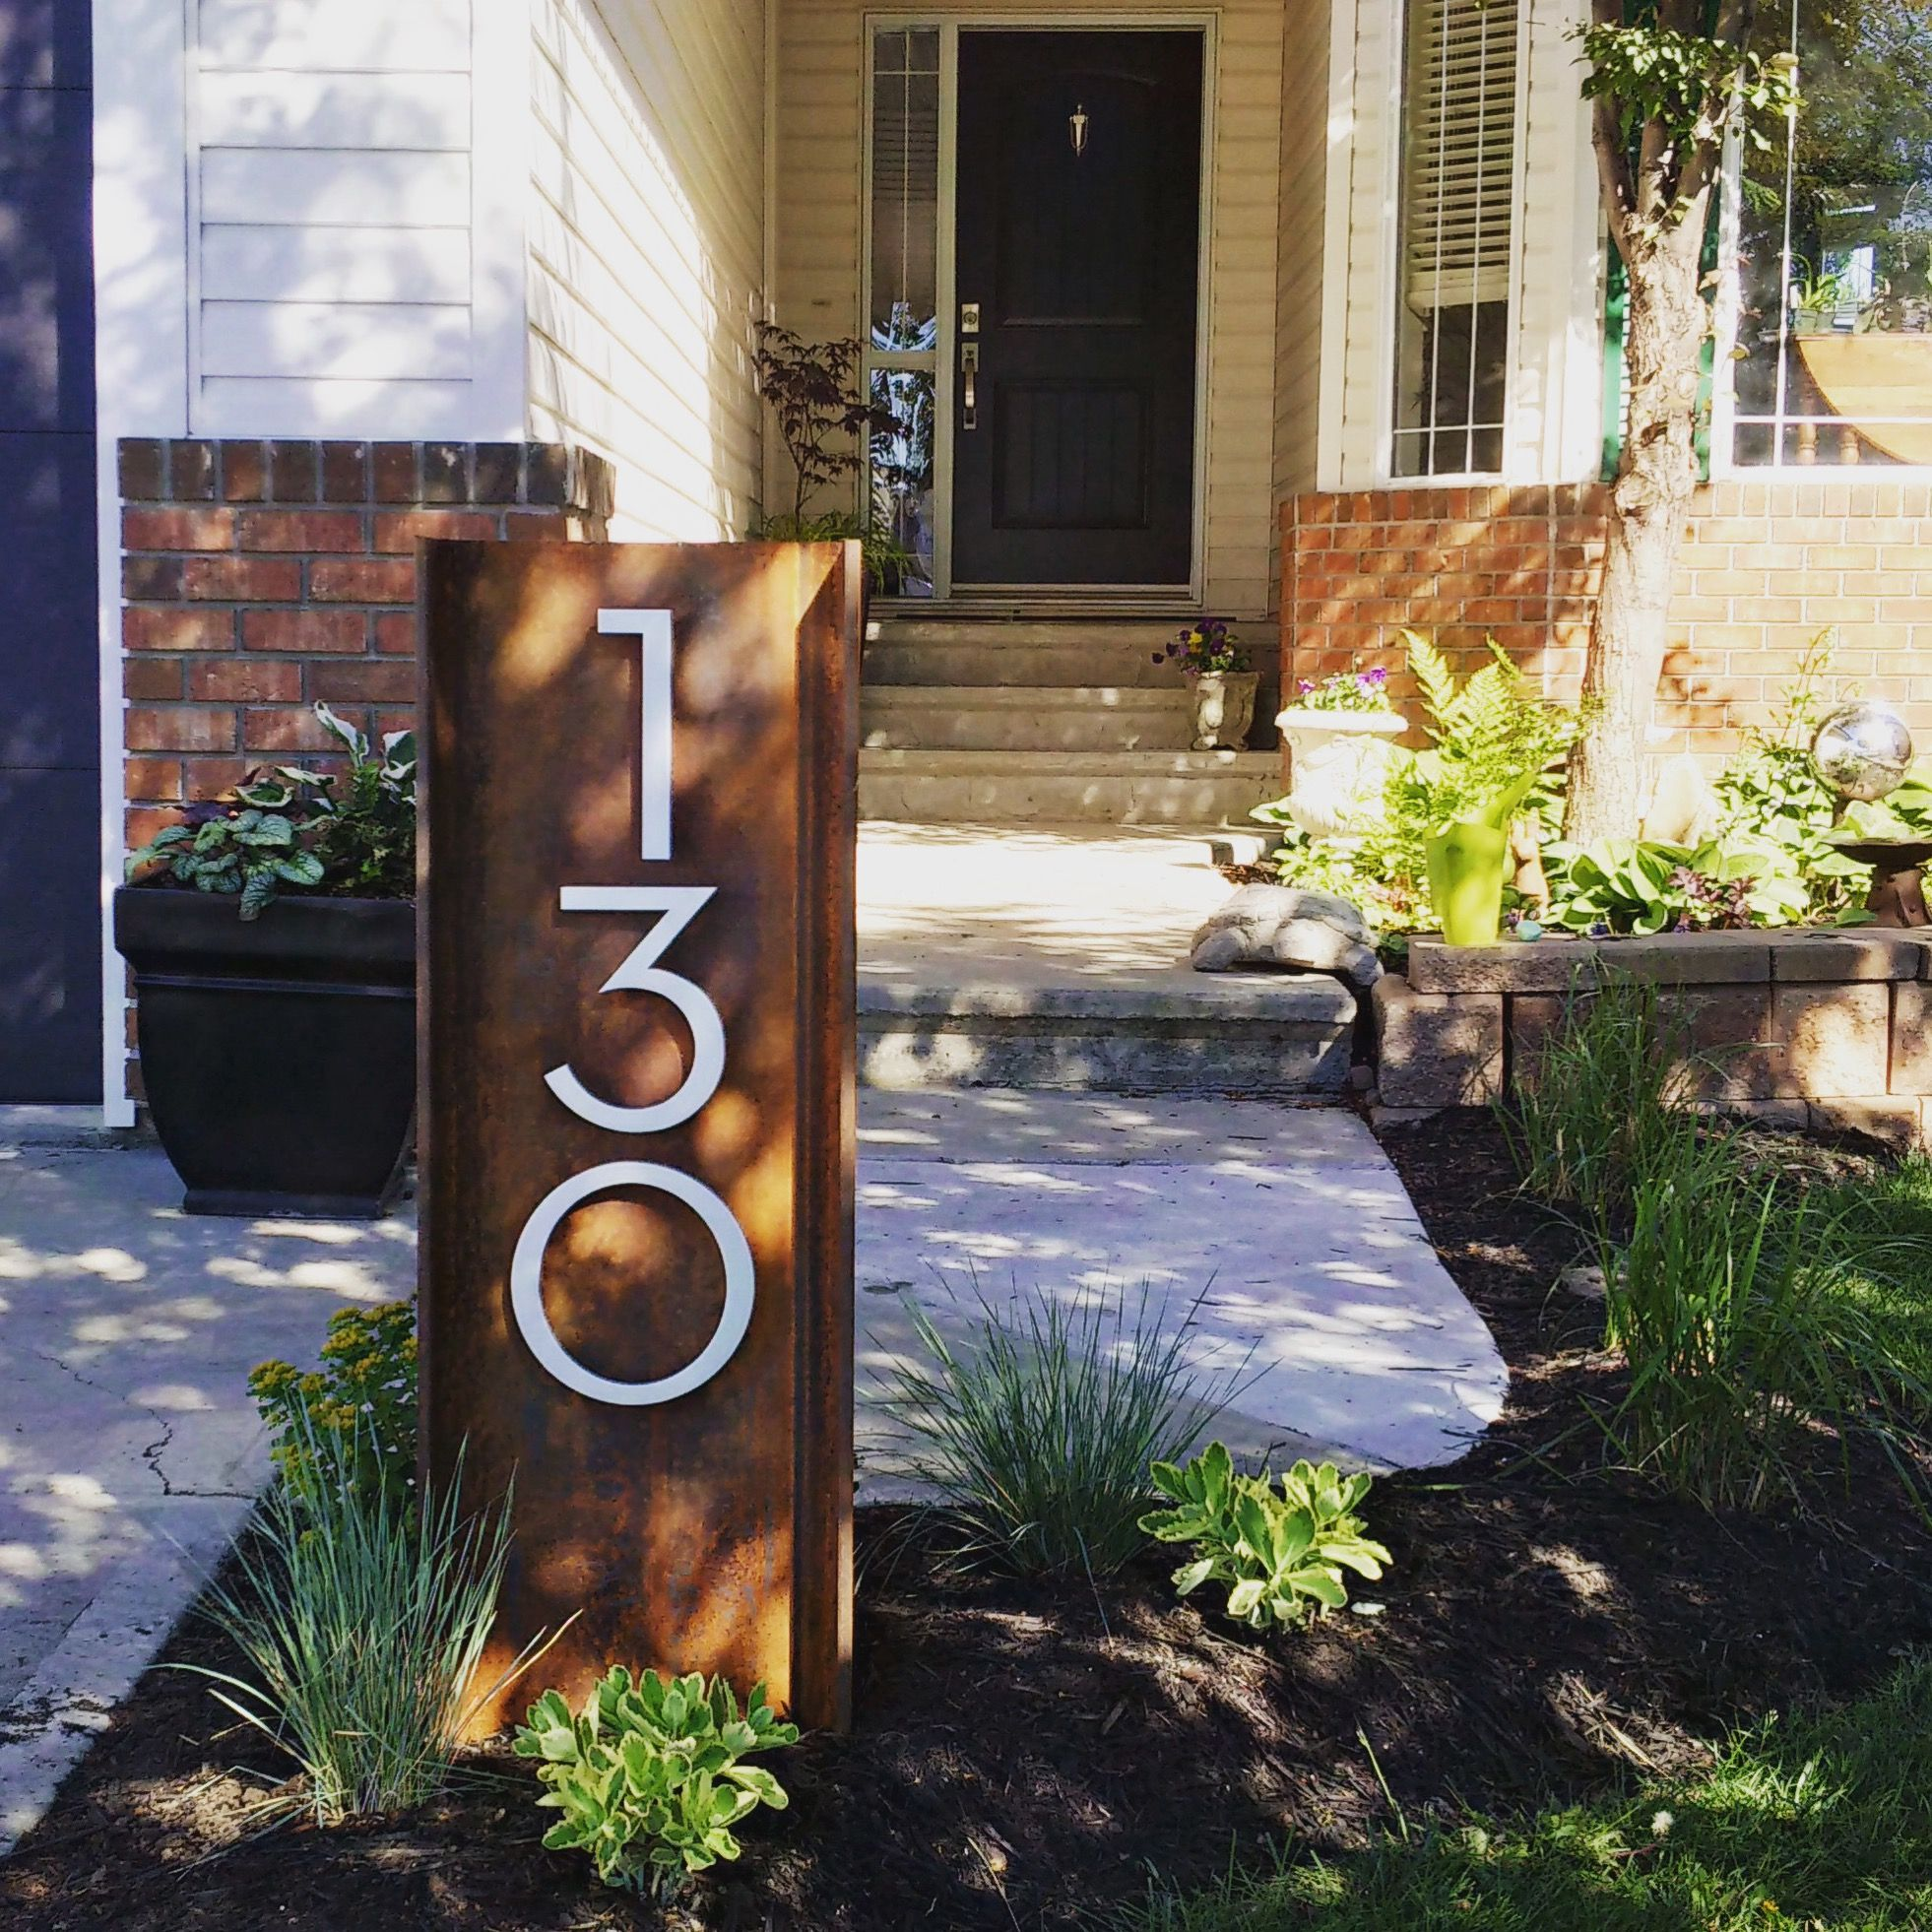 Curb Appeal On The Rise We Love These Palm Springs Numbers Installed Vertically On This Exposed Stee House Number Ideas Outdoor House Numbers Diy Curb Appeal